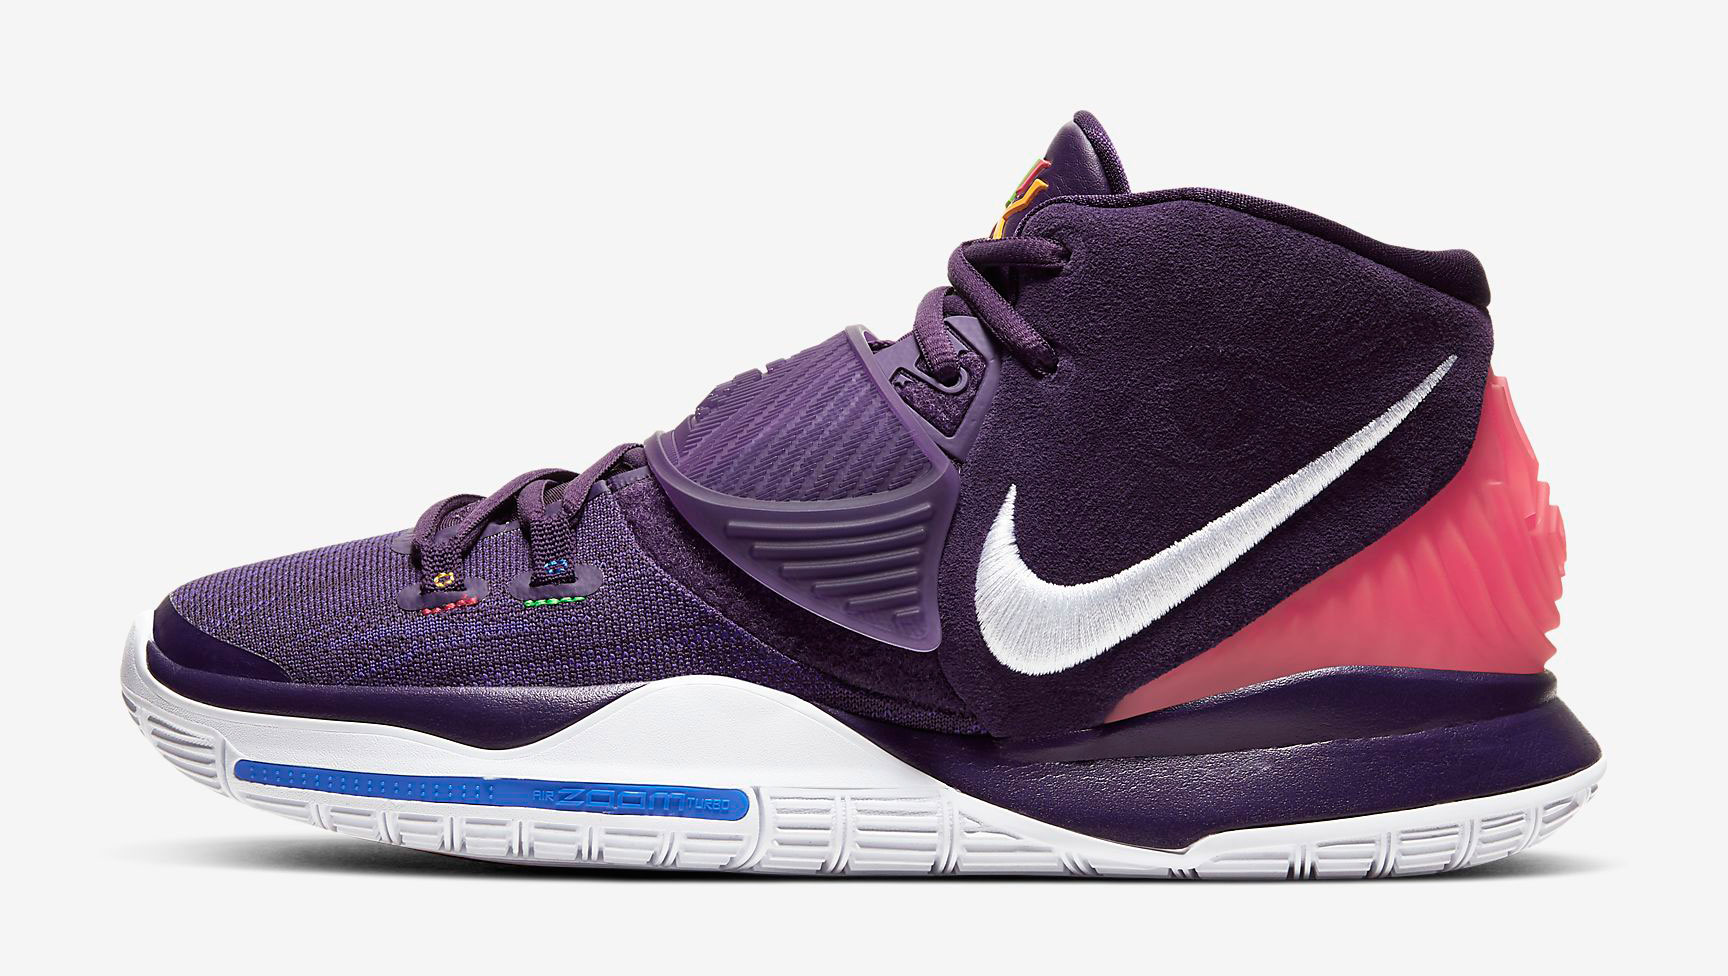 nike-kyrie-6-purple-enlightenment-2